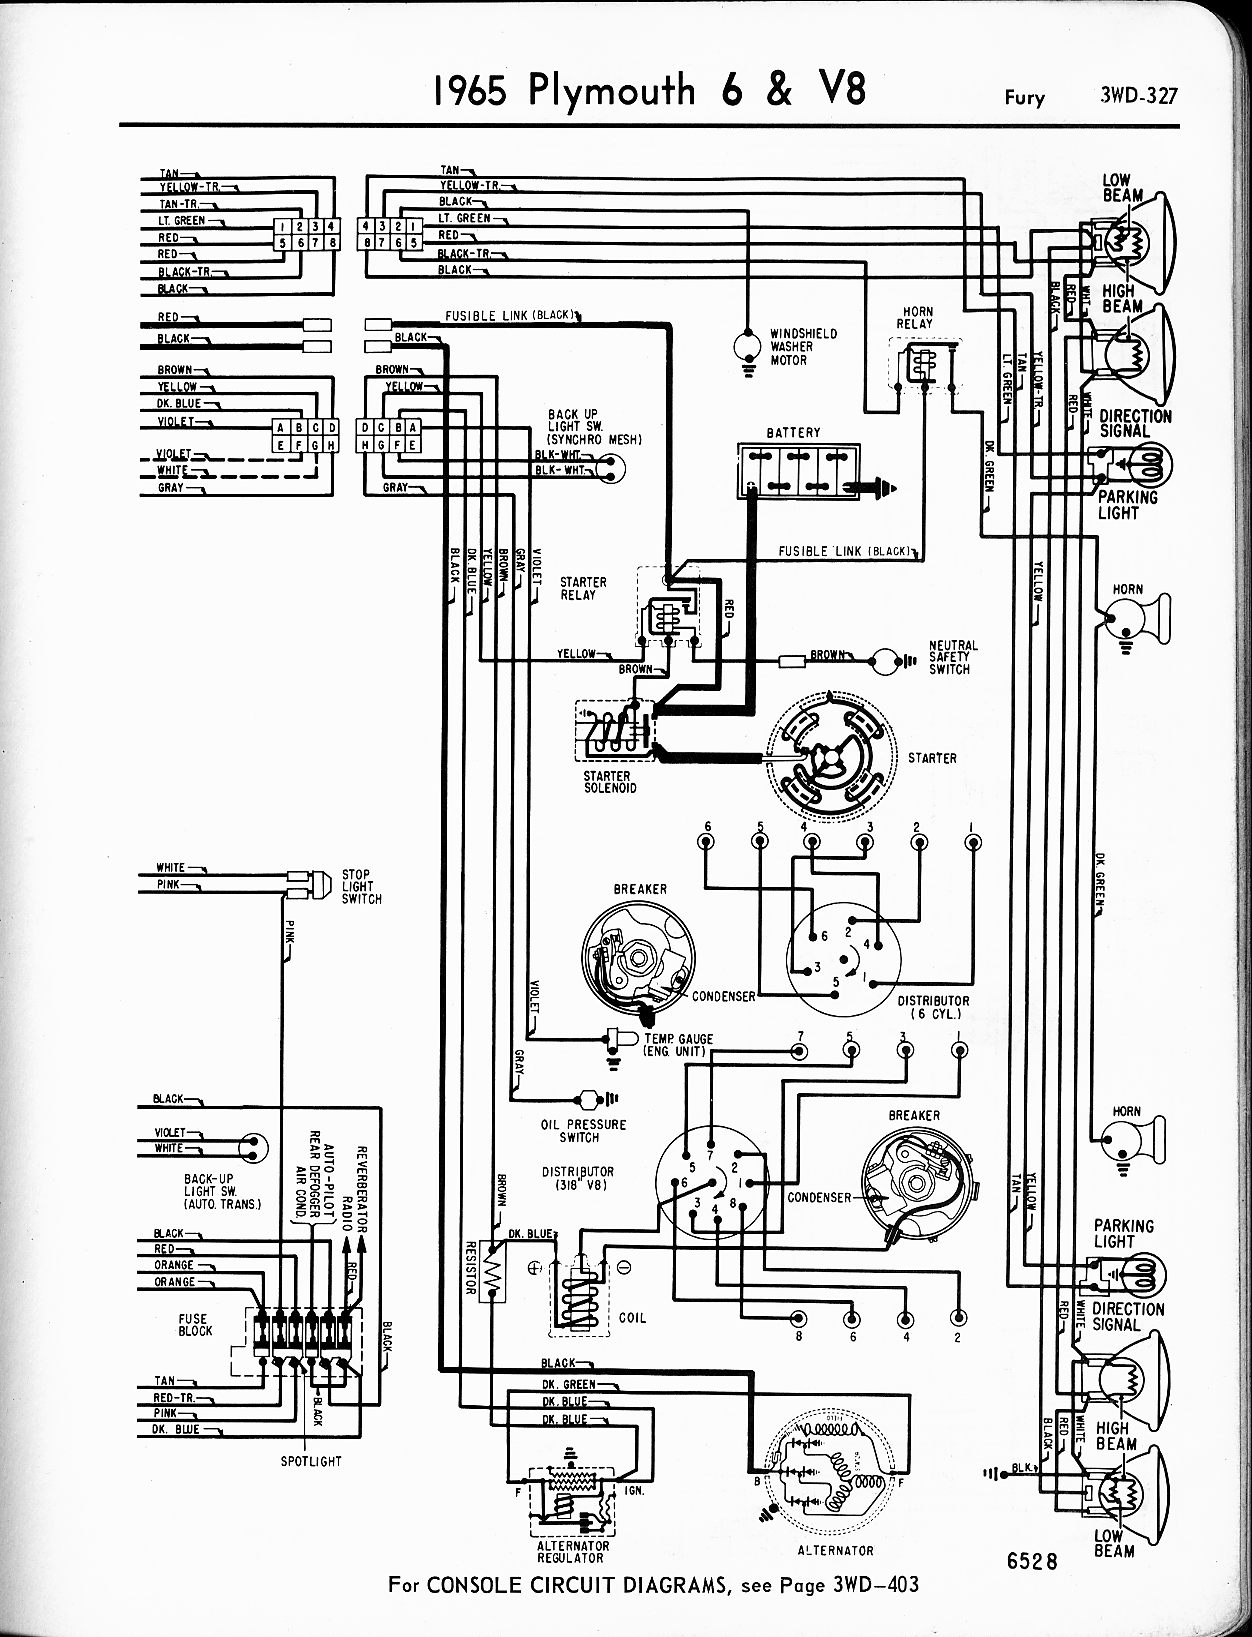 1970 cuda wiring harness wiring diagrams schematic1969 barracuda wiring diagram 12 4 cryptopotato co \\u2022 1977 cuda 1970 cuda wiring harness